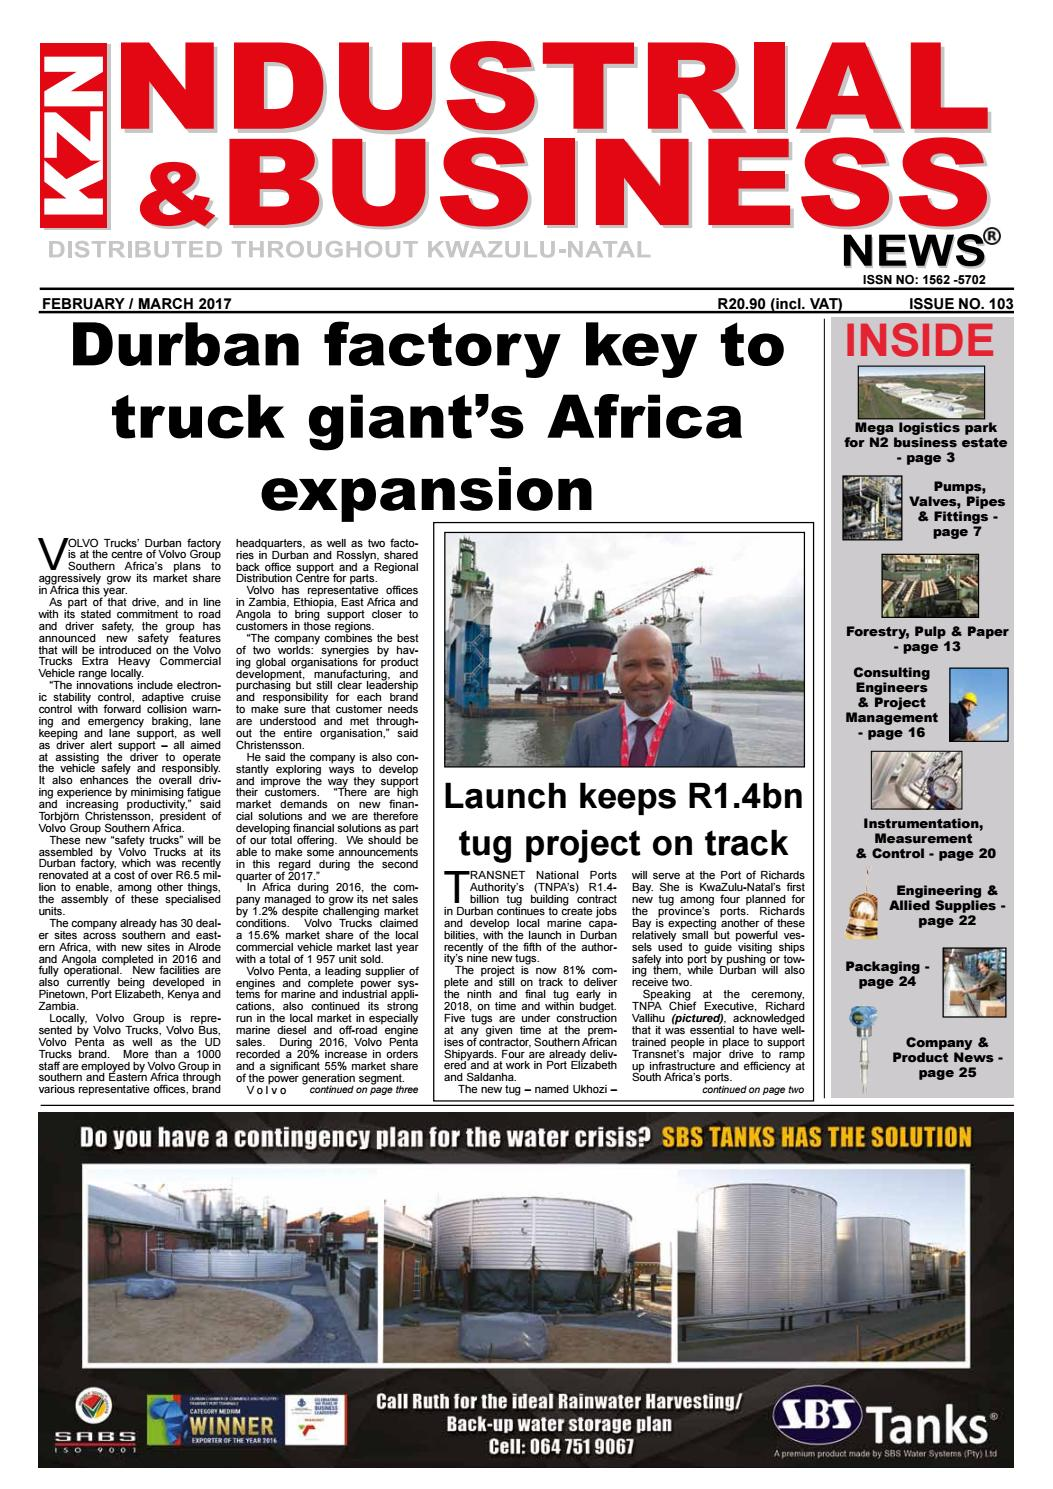 Kzn Industrial Business News Issue 103 Feb Mar 2017 By The Media Circuit Breakers Witbank O Olxcoza Events Company Issuu